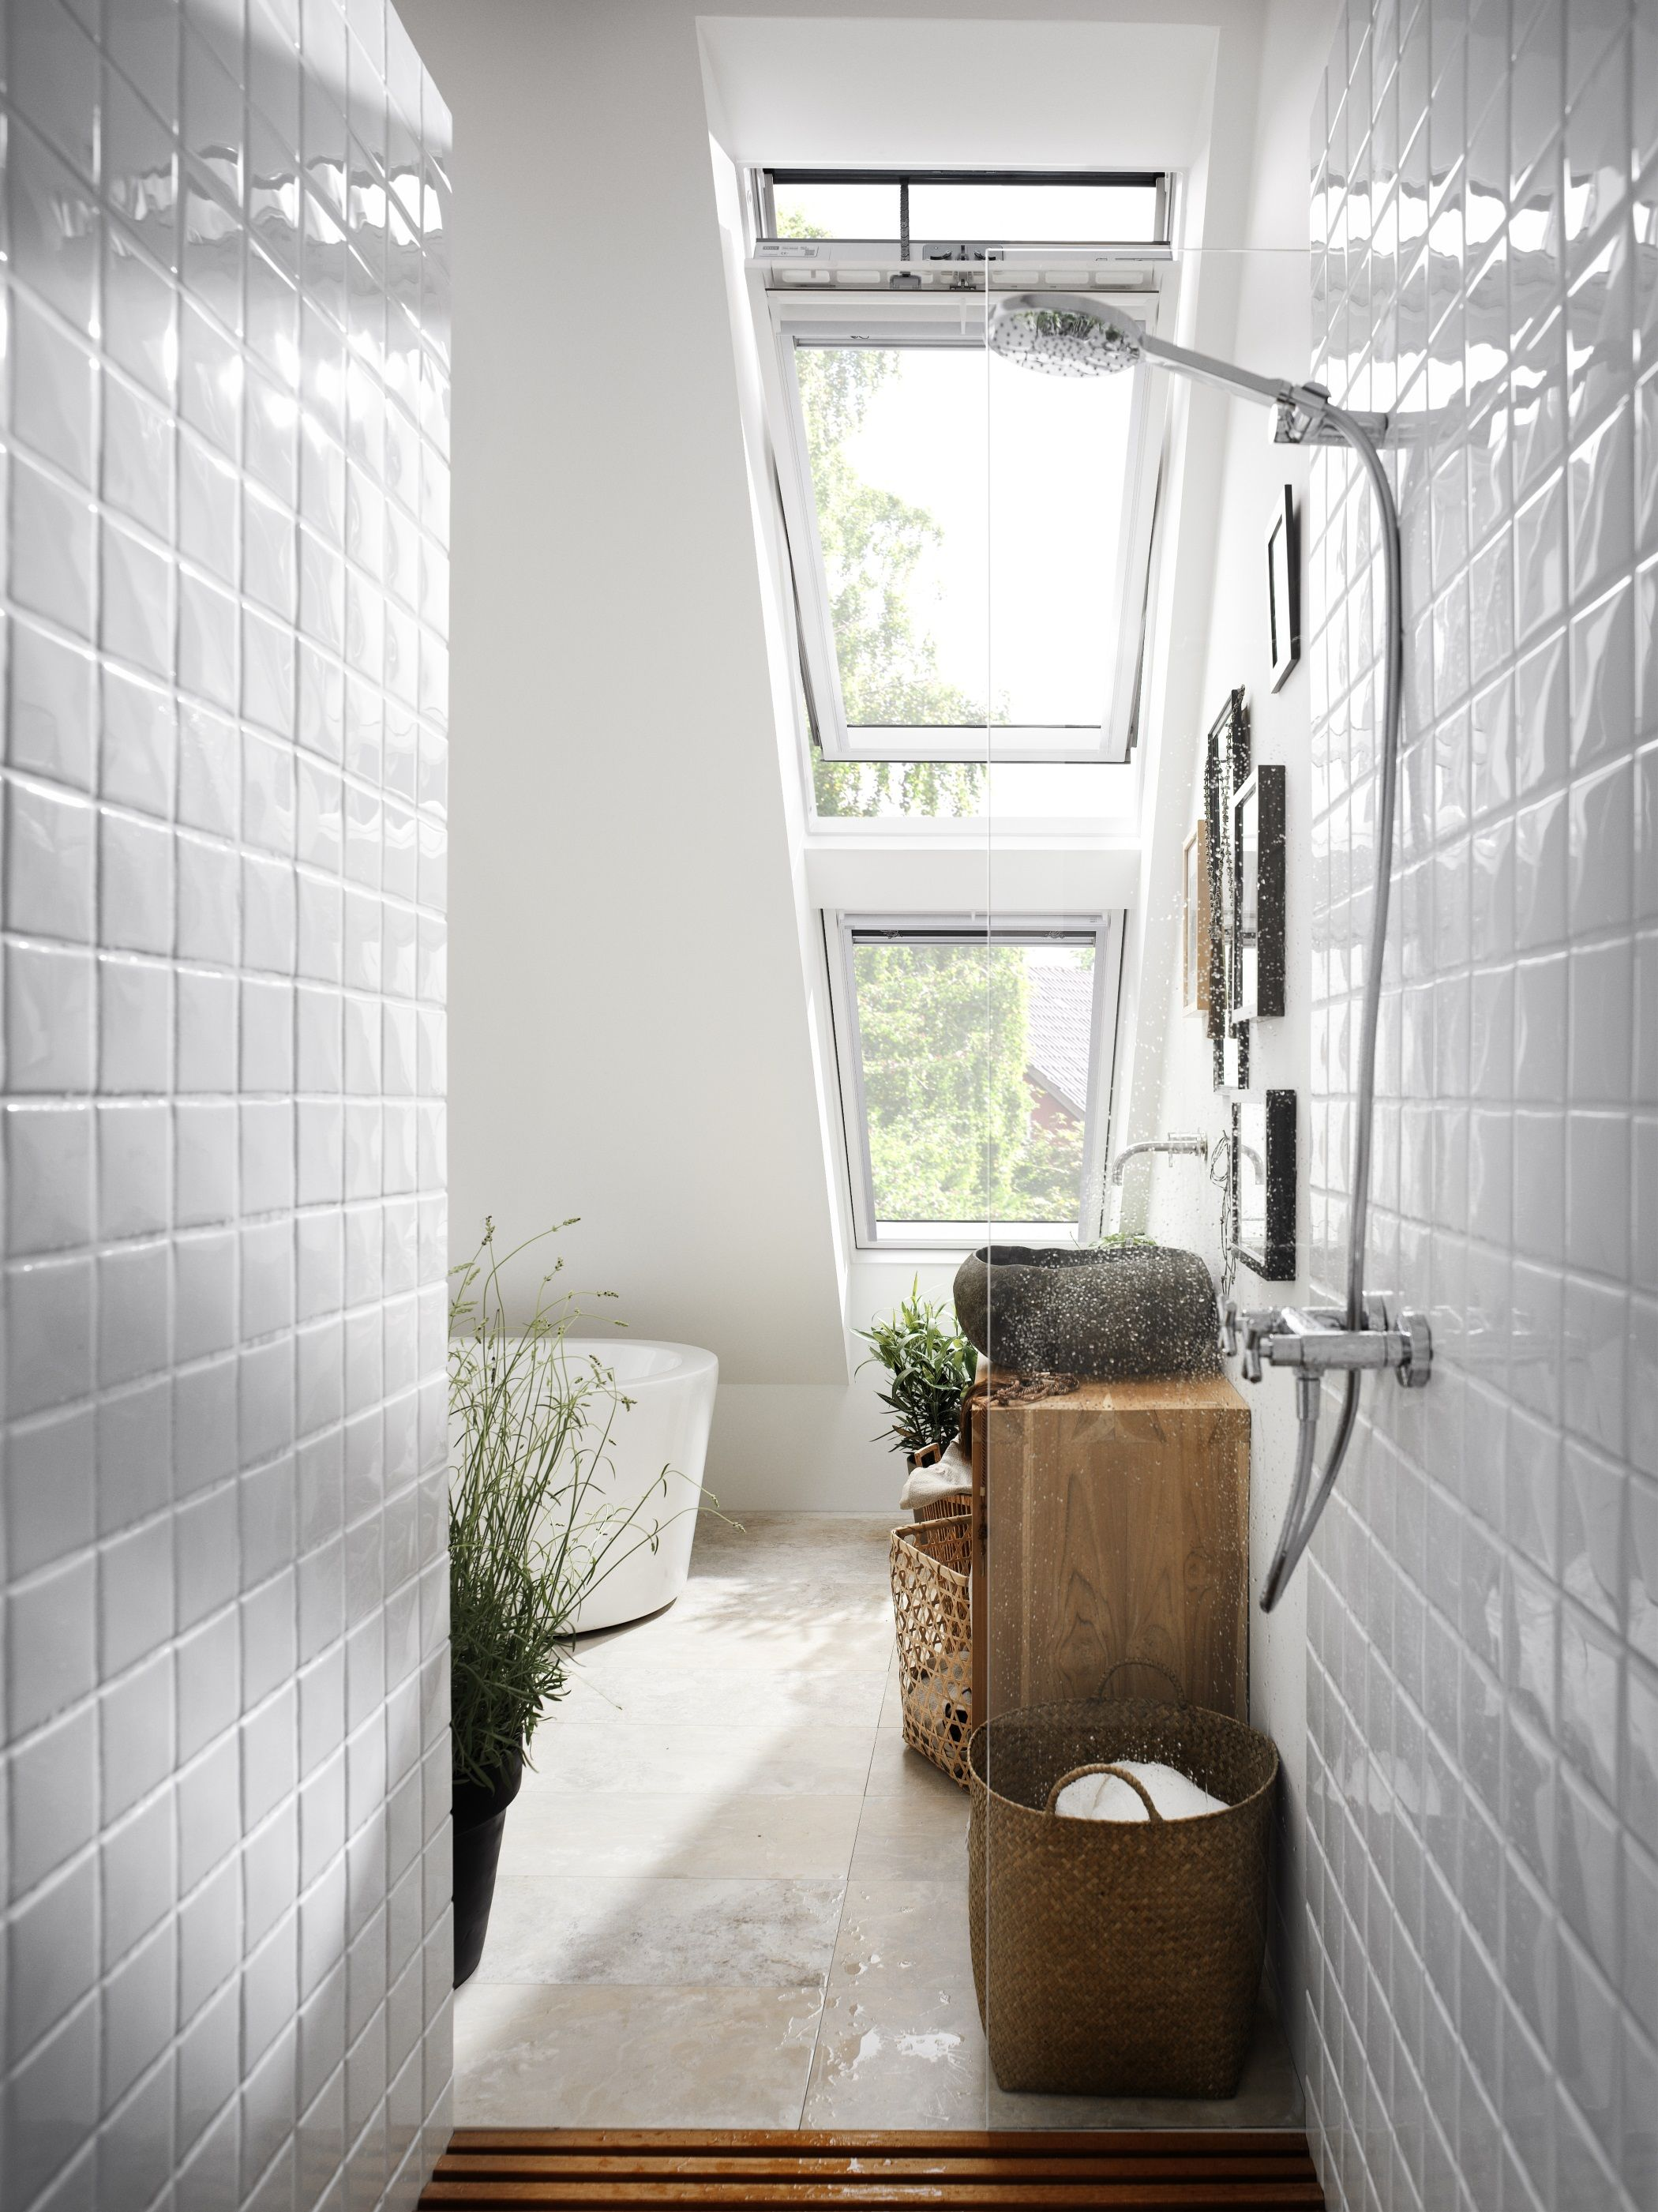 Stunning Loft Conversion With Roof Windows And Natural Light In The Bathroom Loft Conversion Design Your Dream House Velux